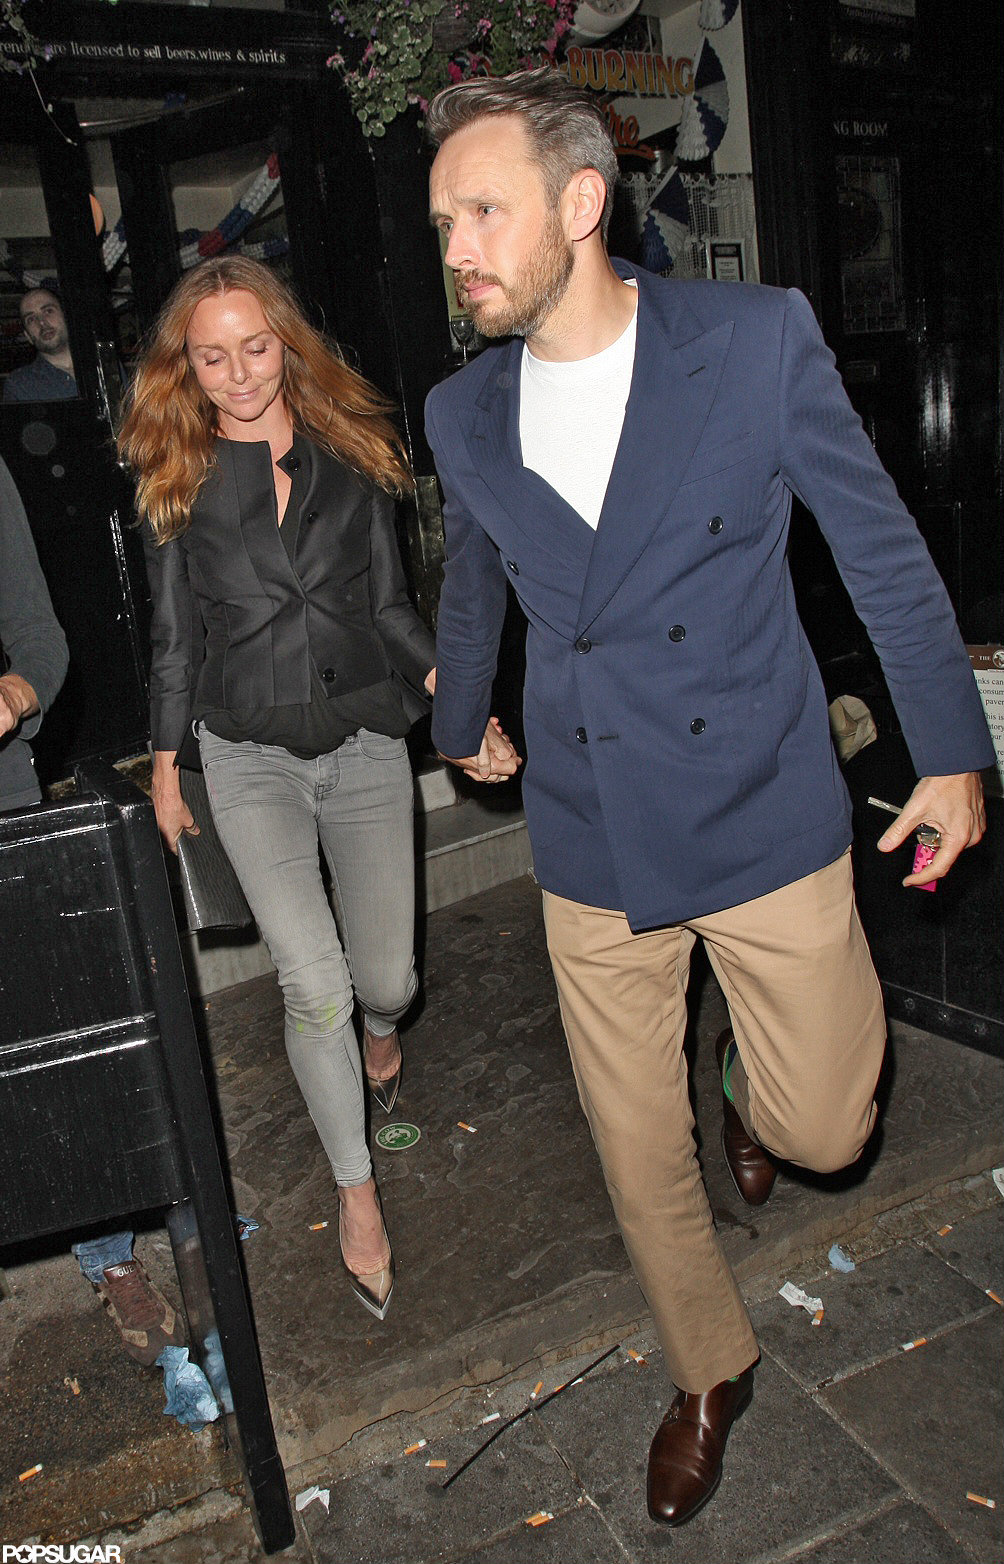 stella mccartney and her husband alasdhair willis joined david beckham